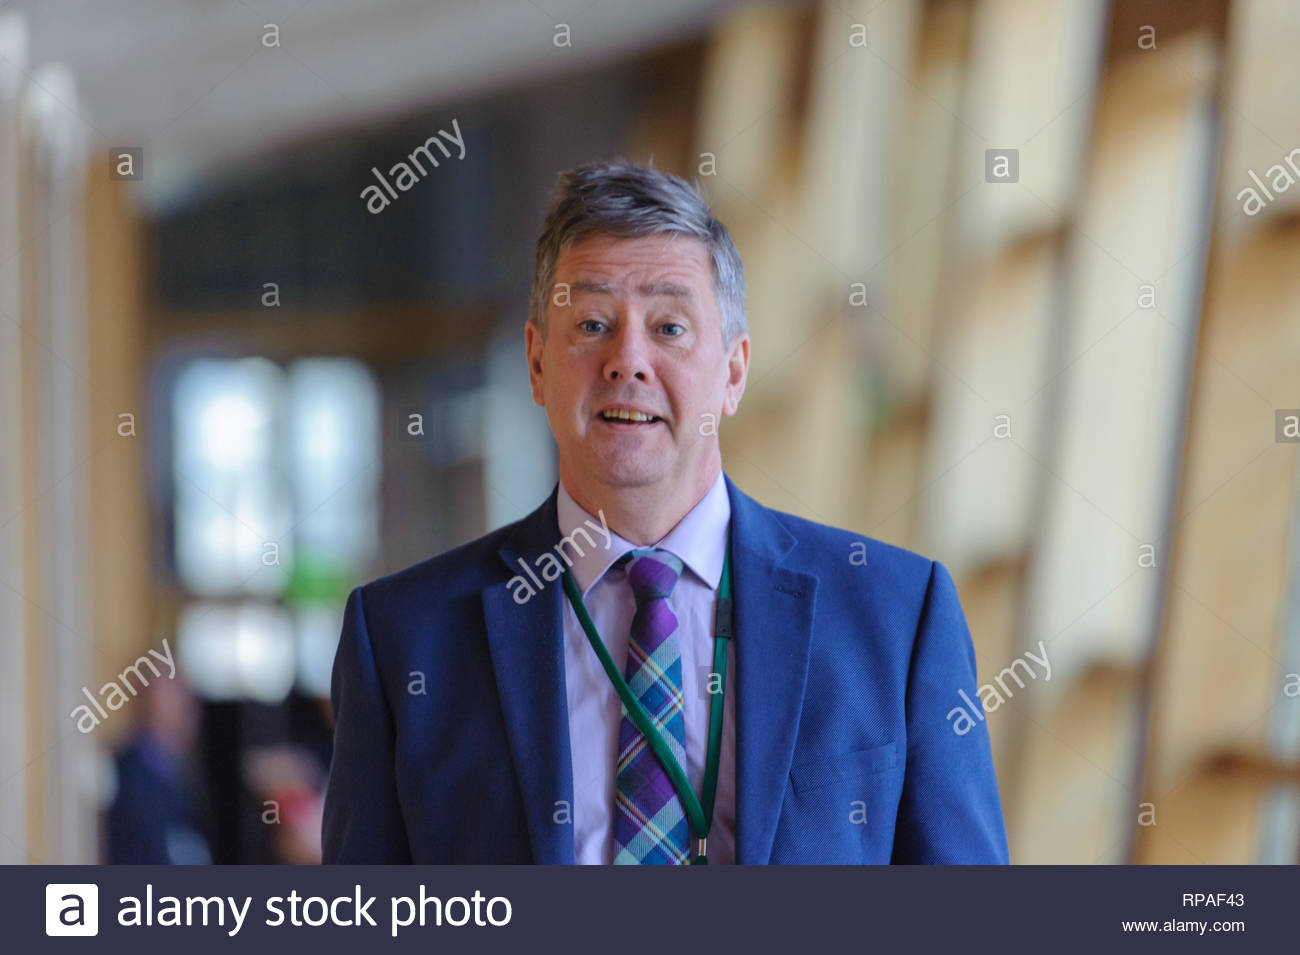 Edinburgh, UK. 21st Feb, 2019. Keith Brown MSP on his way to First Ministers Questions in the Scottish Parliament. Credit: Roger Gaisford/Alamy Live News Stock Photo